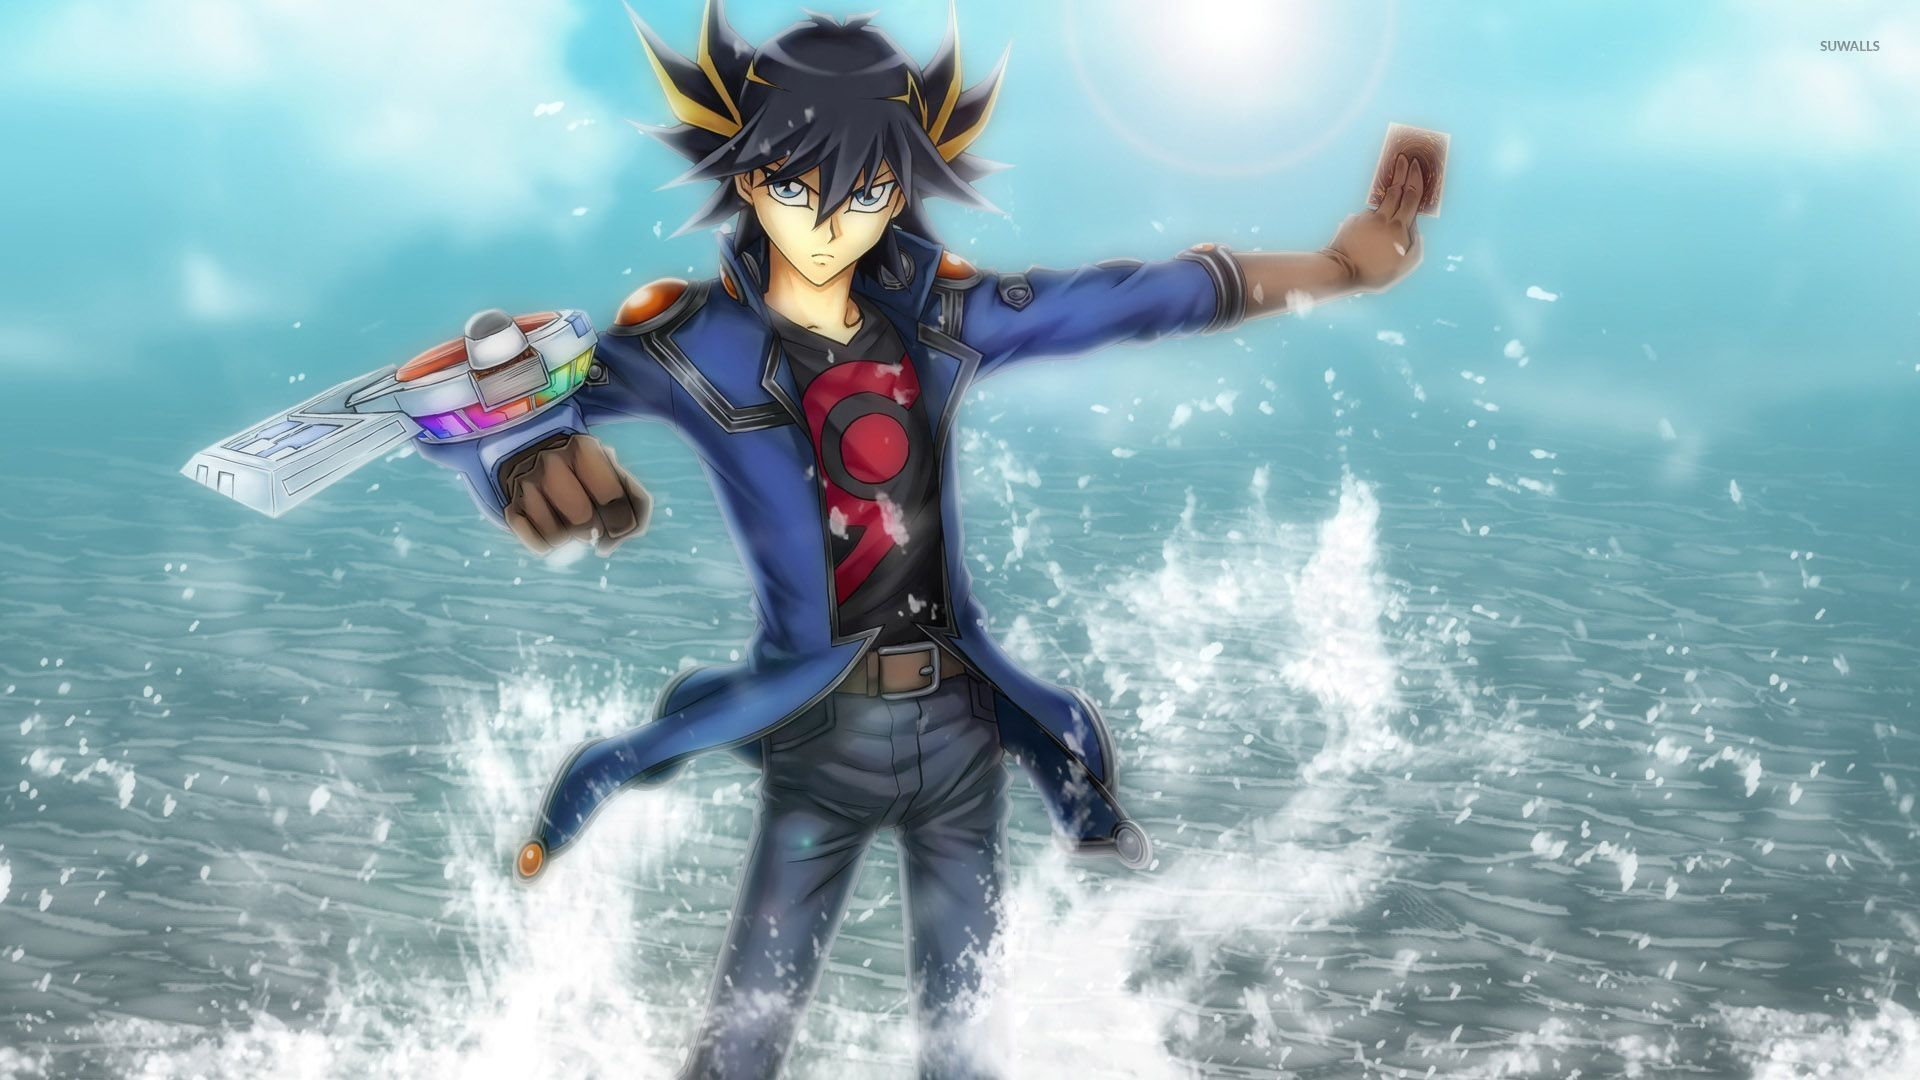 Yugioh Iphone Wallpaper Yusei Fudo Yu Gi Oh Wallpaper Game Wallpapers 30553